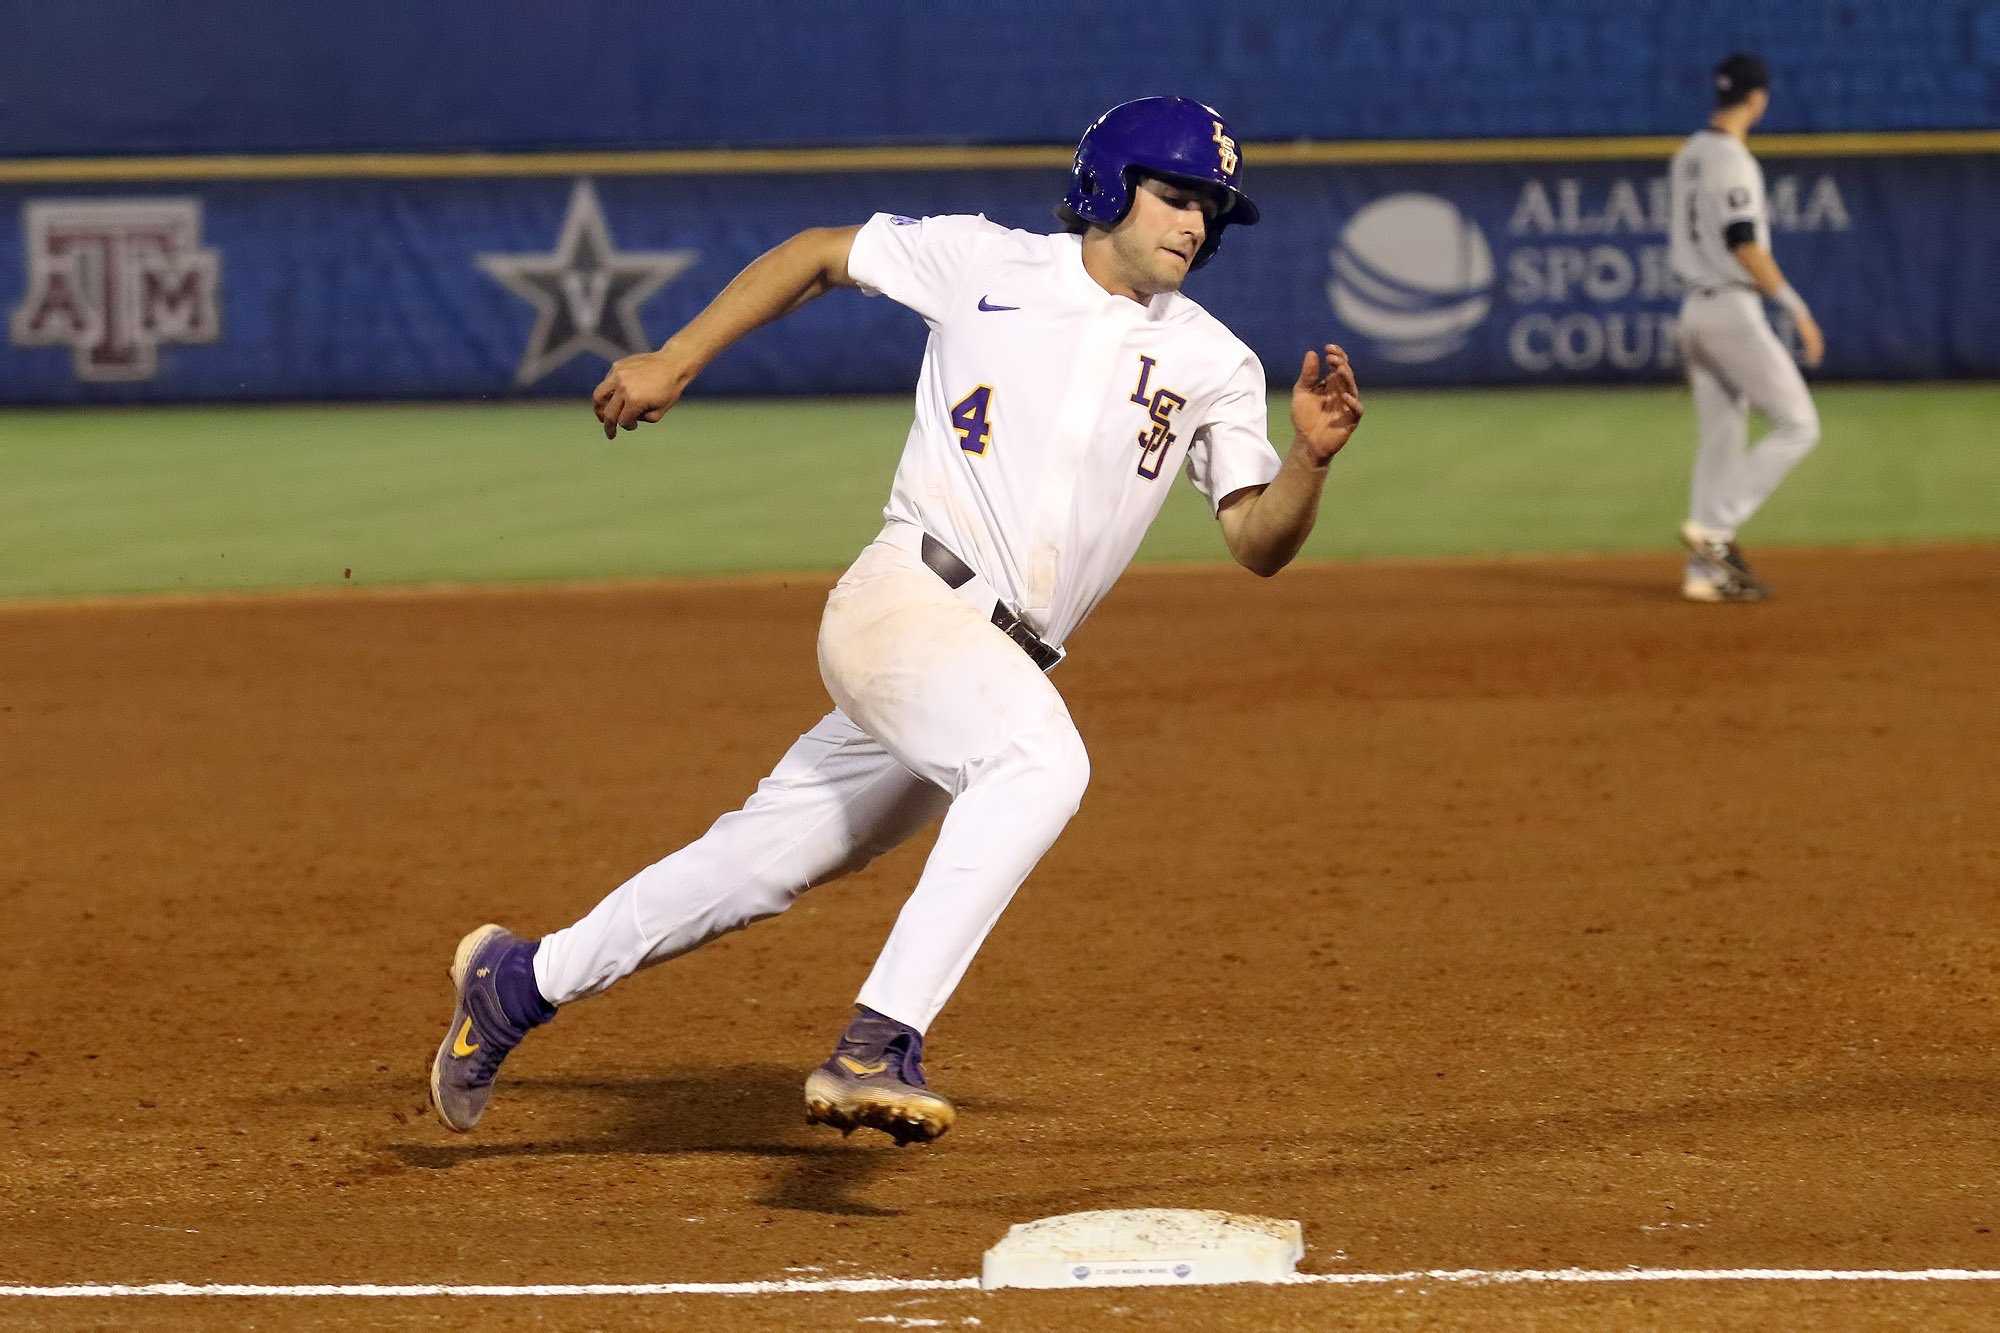 LSU powers past South Carolina in SEC Tournament opener